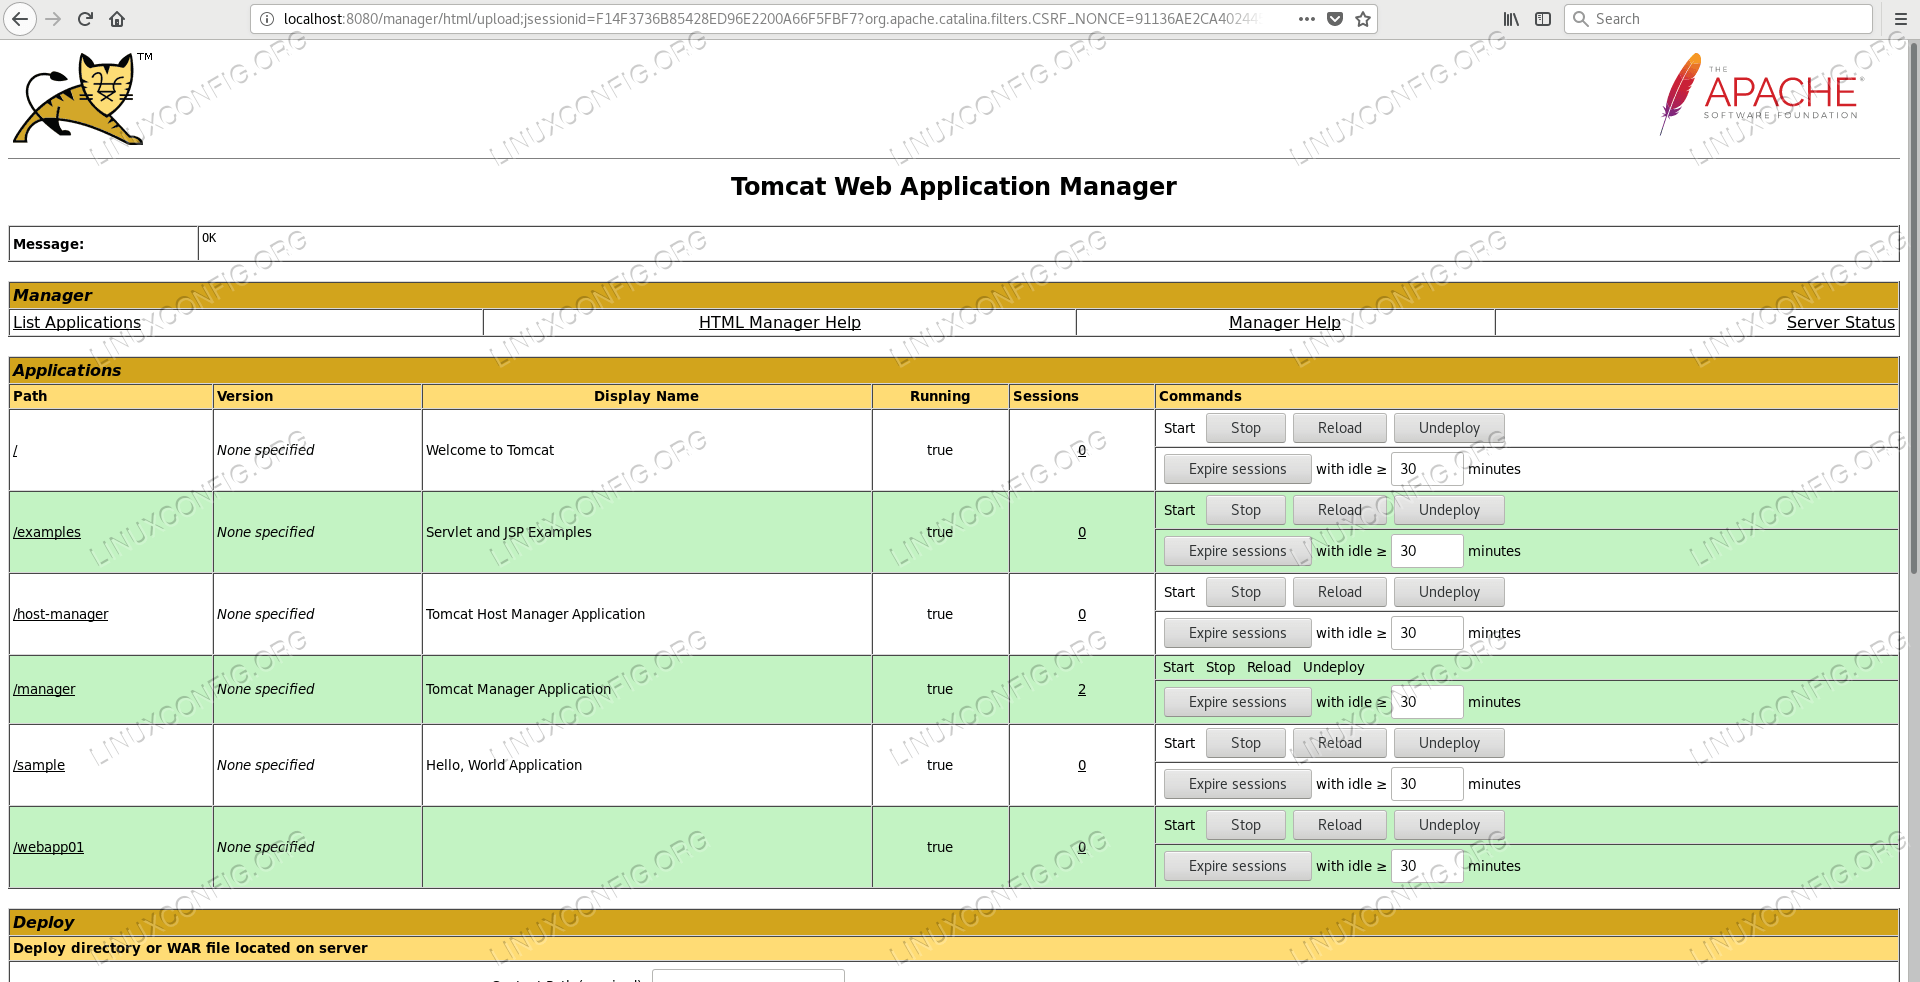 Successful deployment with the Manager Application